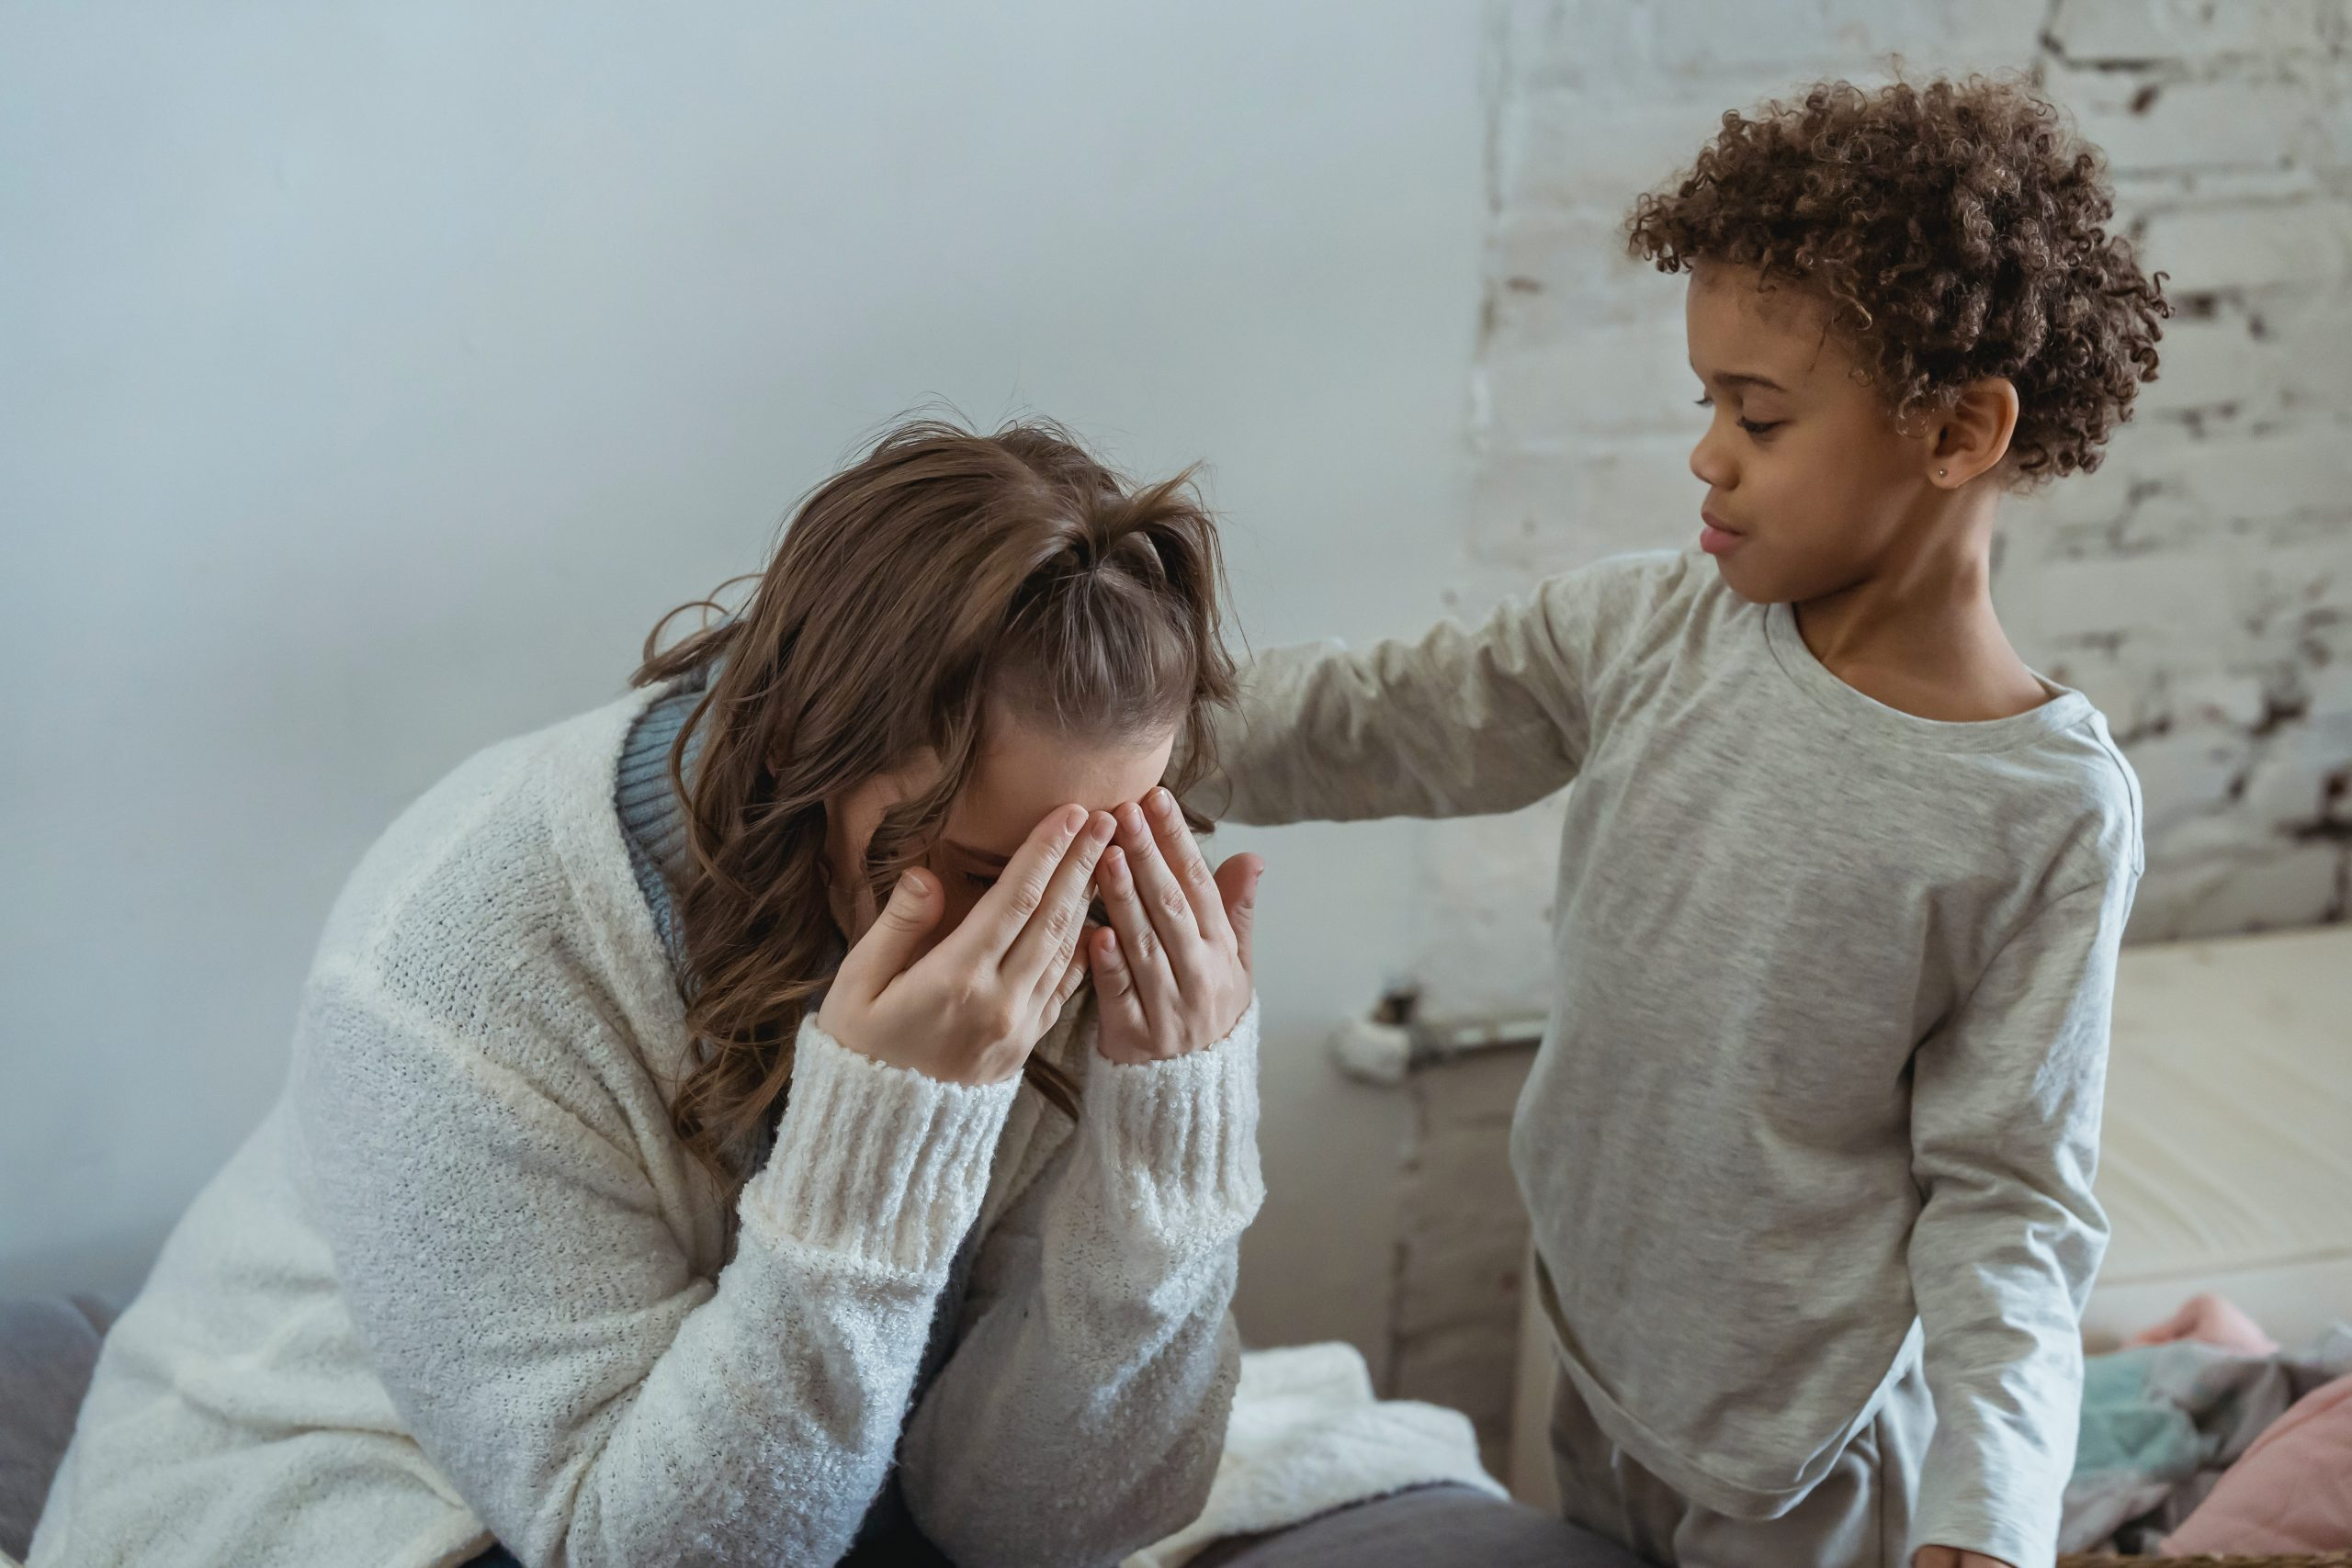 gentle parenting when you don't feel okay